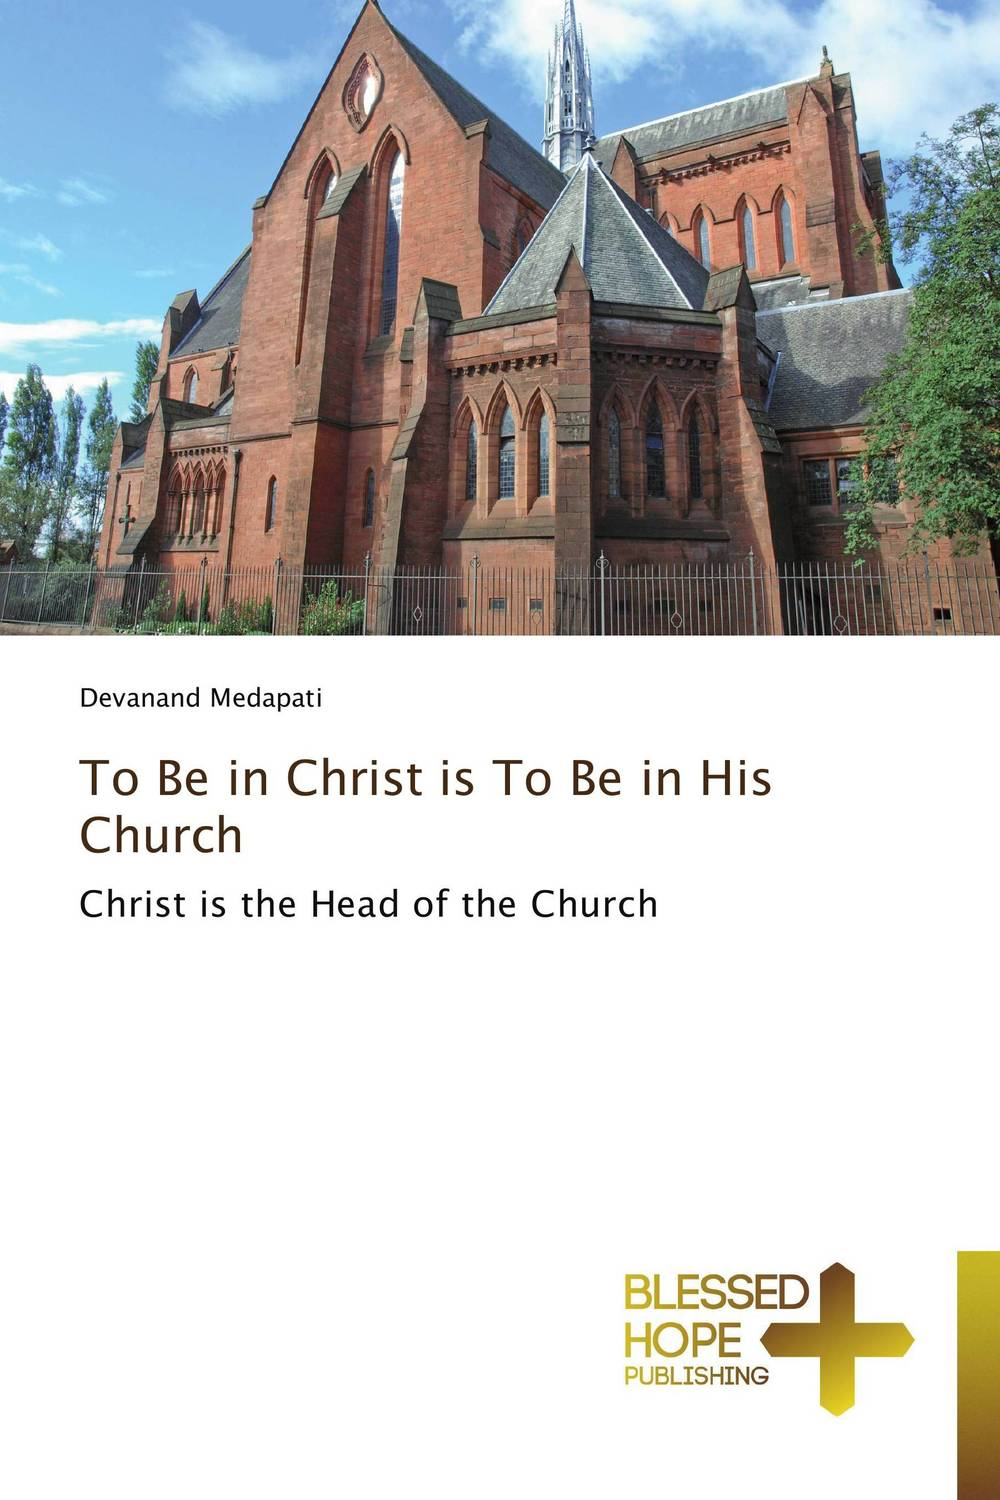 christ оранжевый tula крист To Be in Christ is To Be in His Church